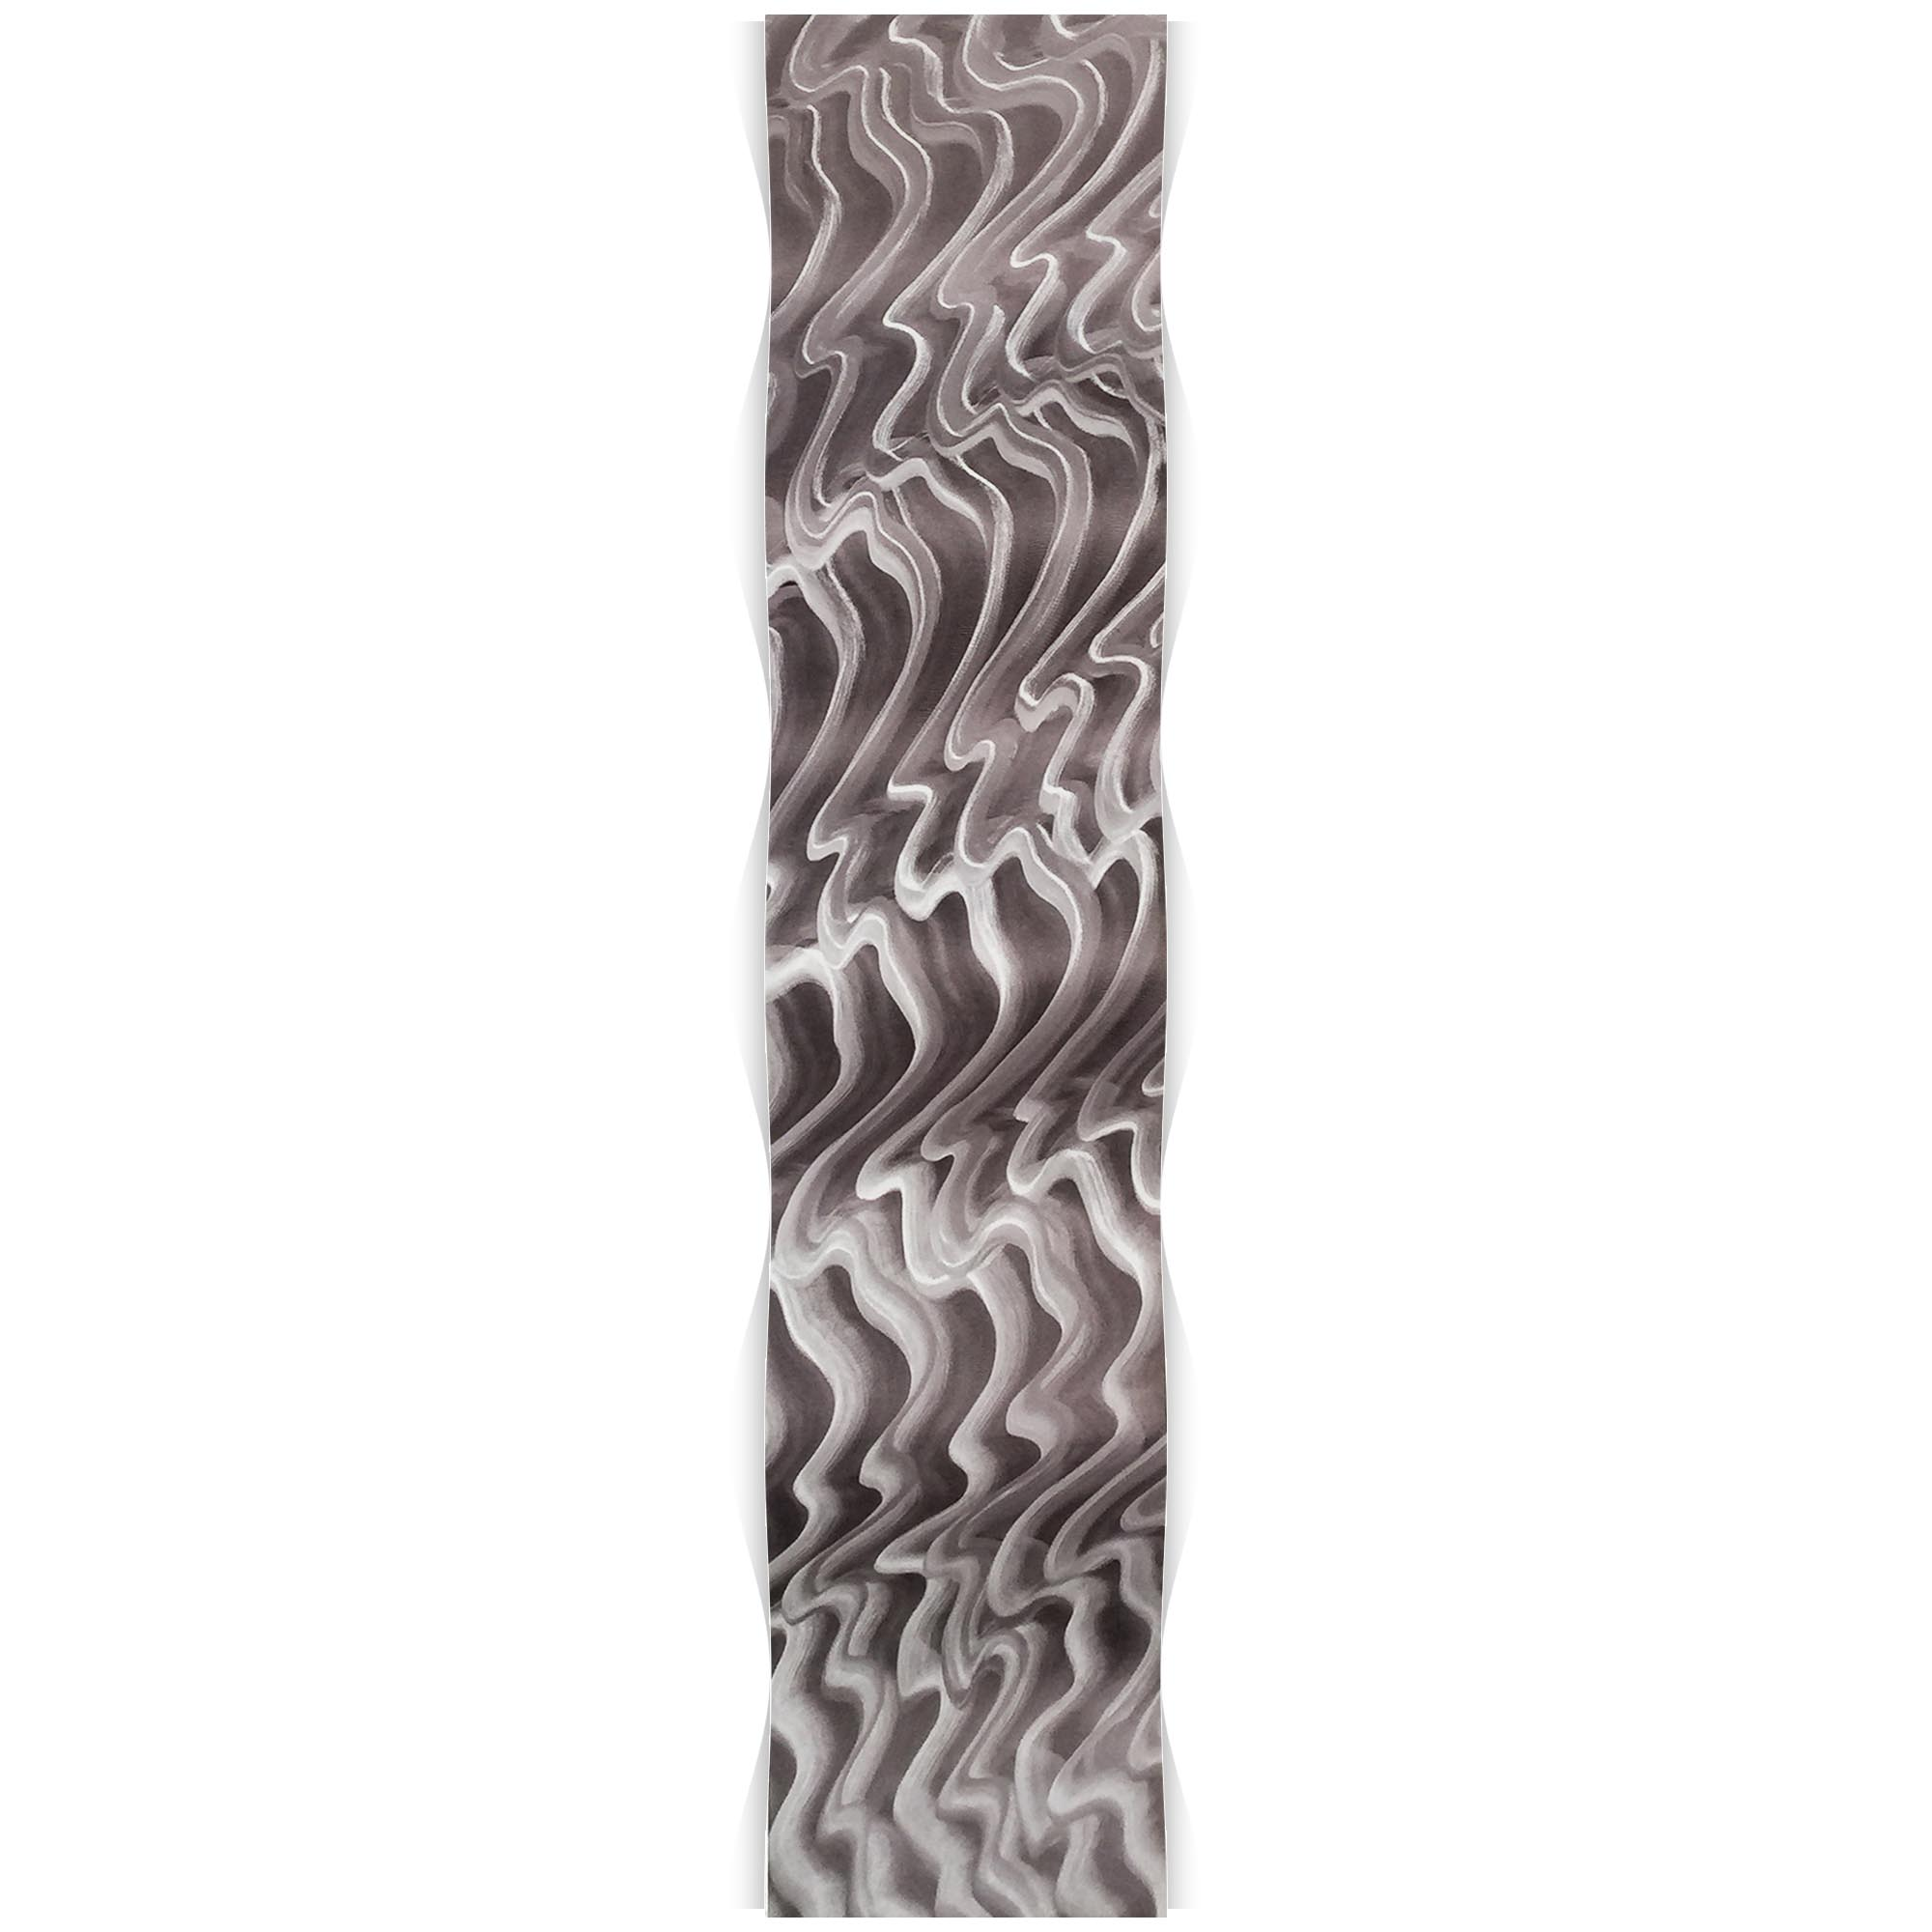 Polar Wave 9.5x44in. Metal Eclectic Decor - Image 2